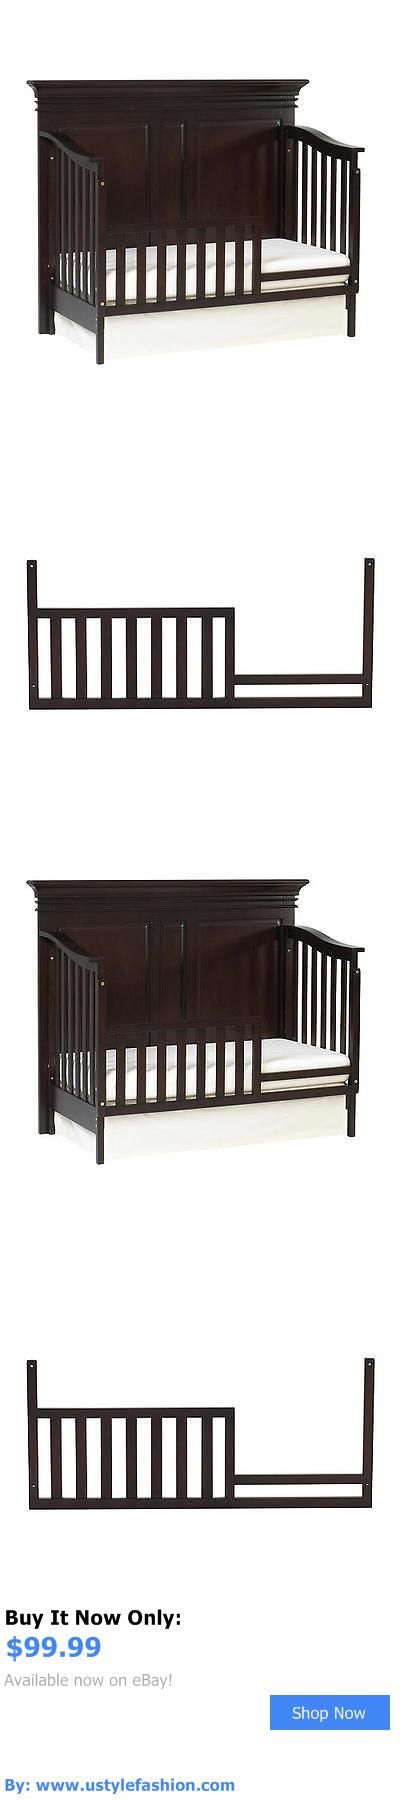 Nursery Furniture Sets: Baby Cache Vienna Toddler Guard Rail - Espresso BUY IT NOW ONLY: $99.99 #ustylefashionNurseryFurnitureSets OR #ustylefashion